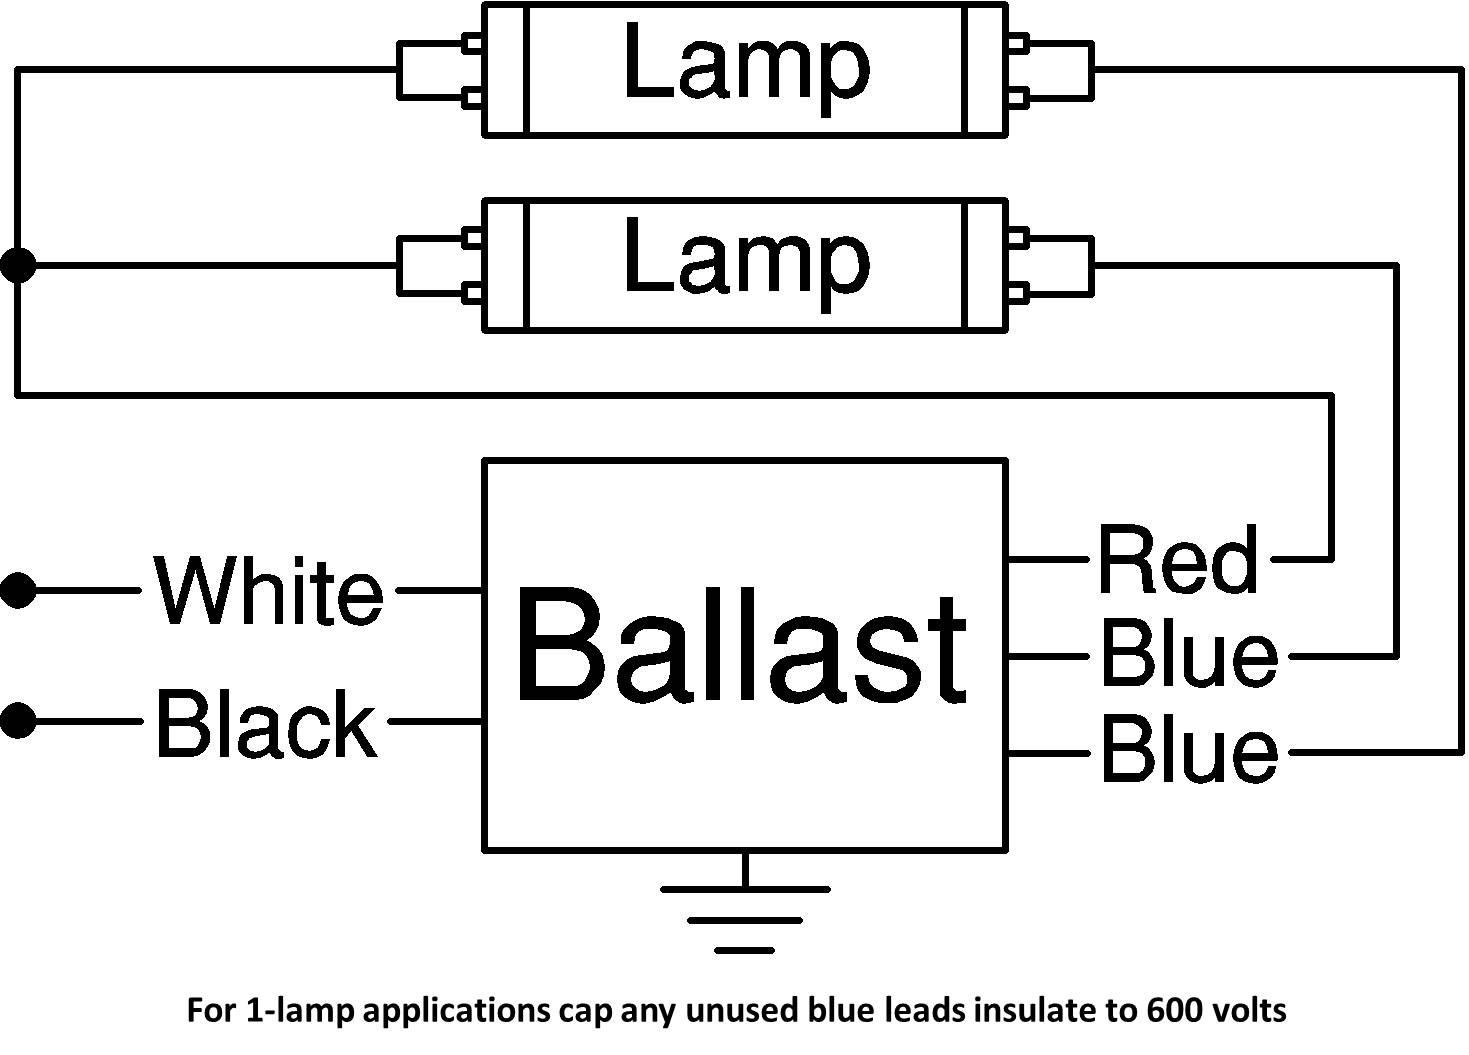 3 Lamp Advance Ballast Wiring Diagram FULL HD Version Wiring Diagram - LULU- DIAGRAM.TACCHETTIDIFERRO.ITDiagram Database And Images